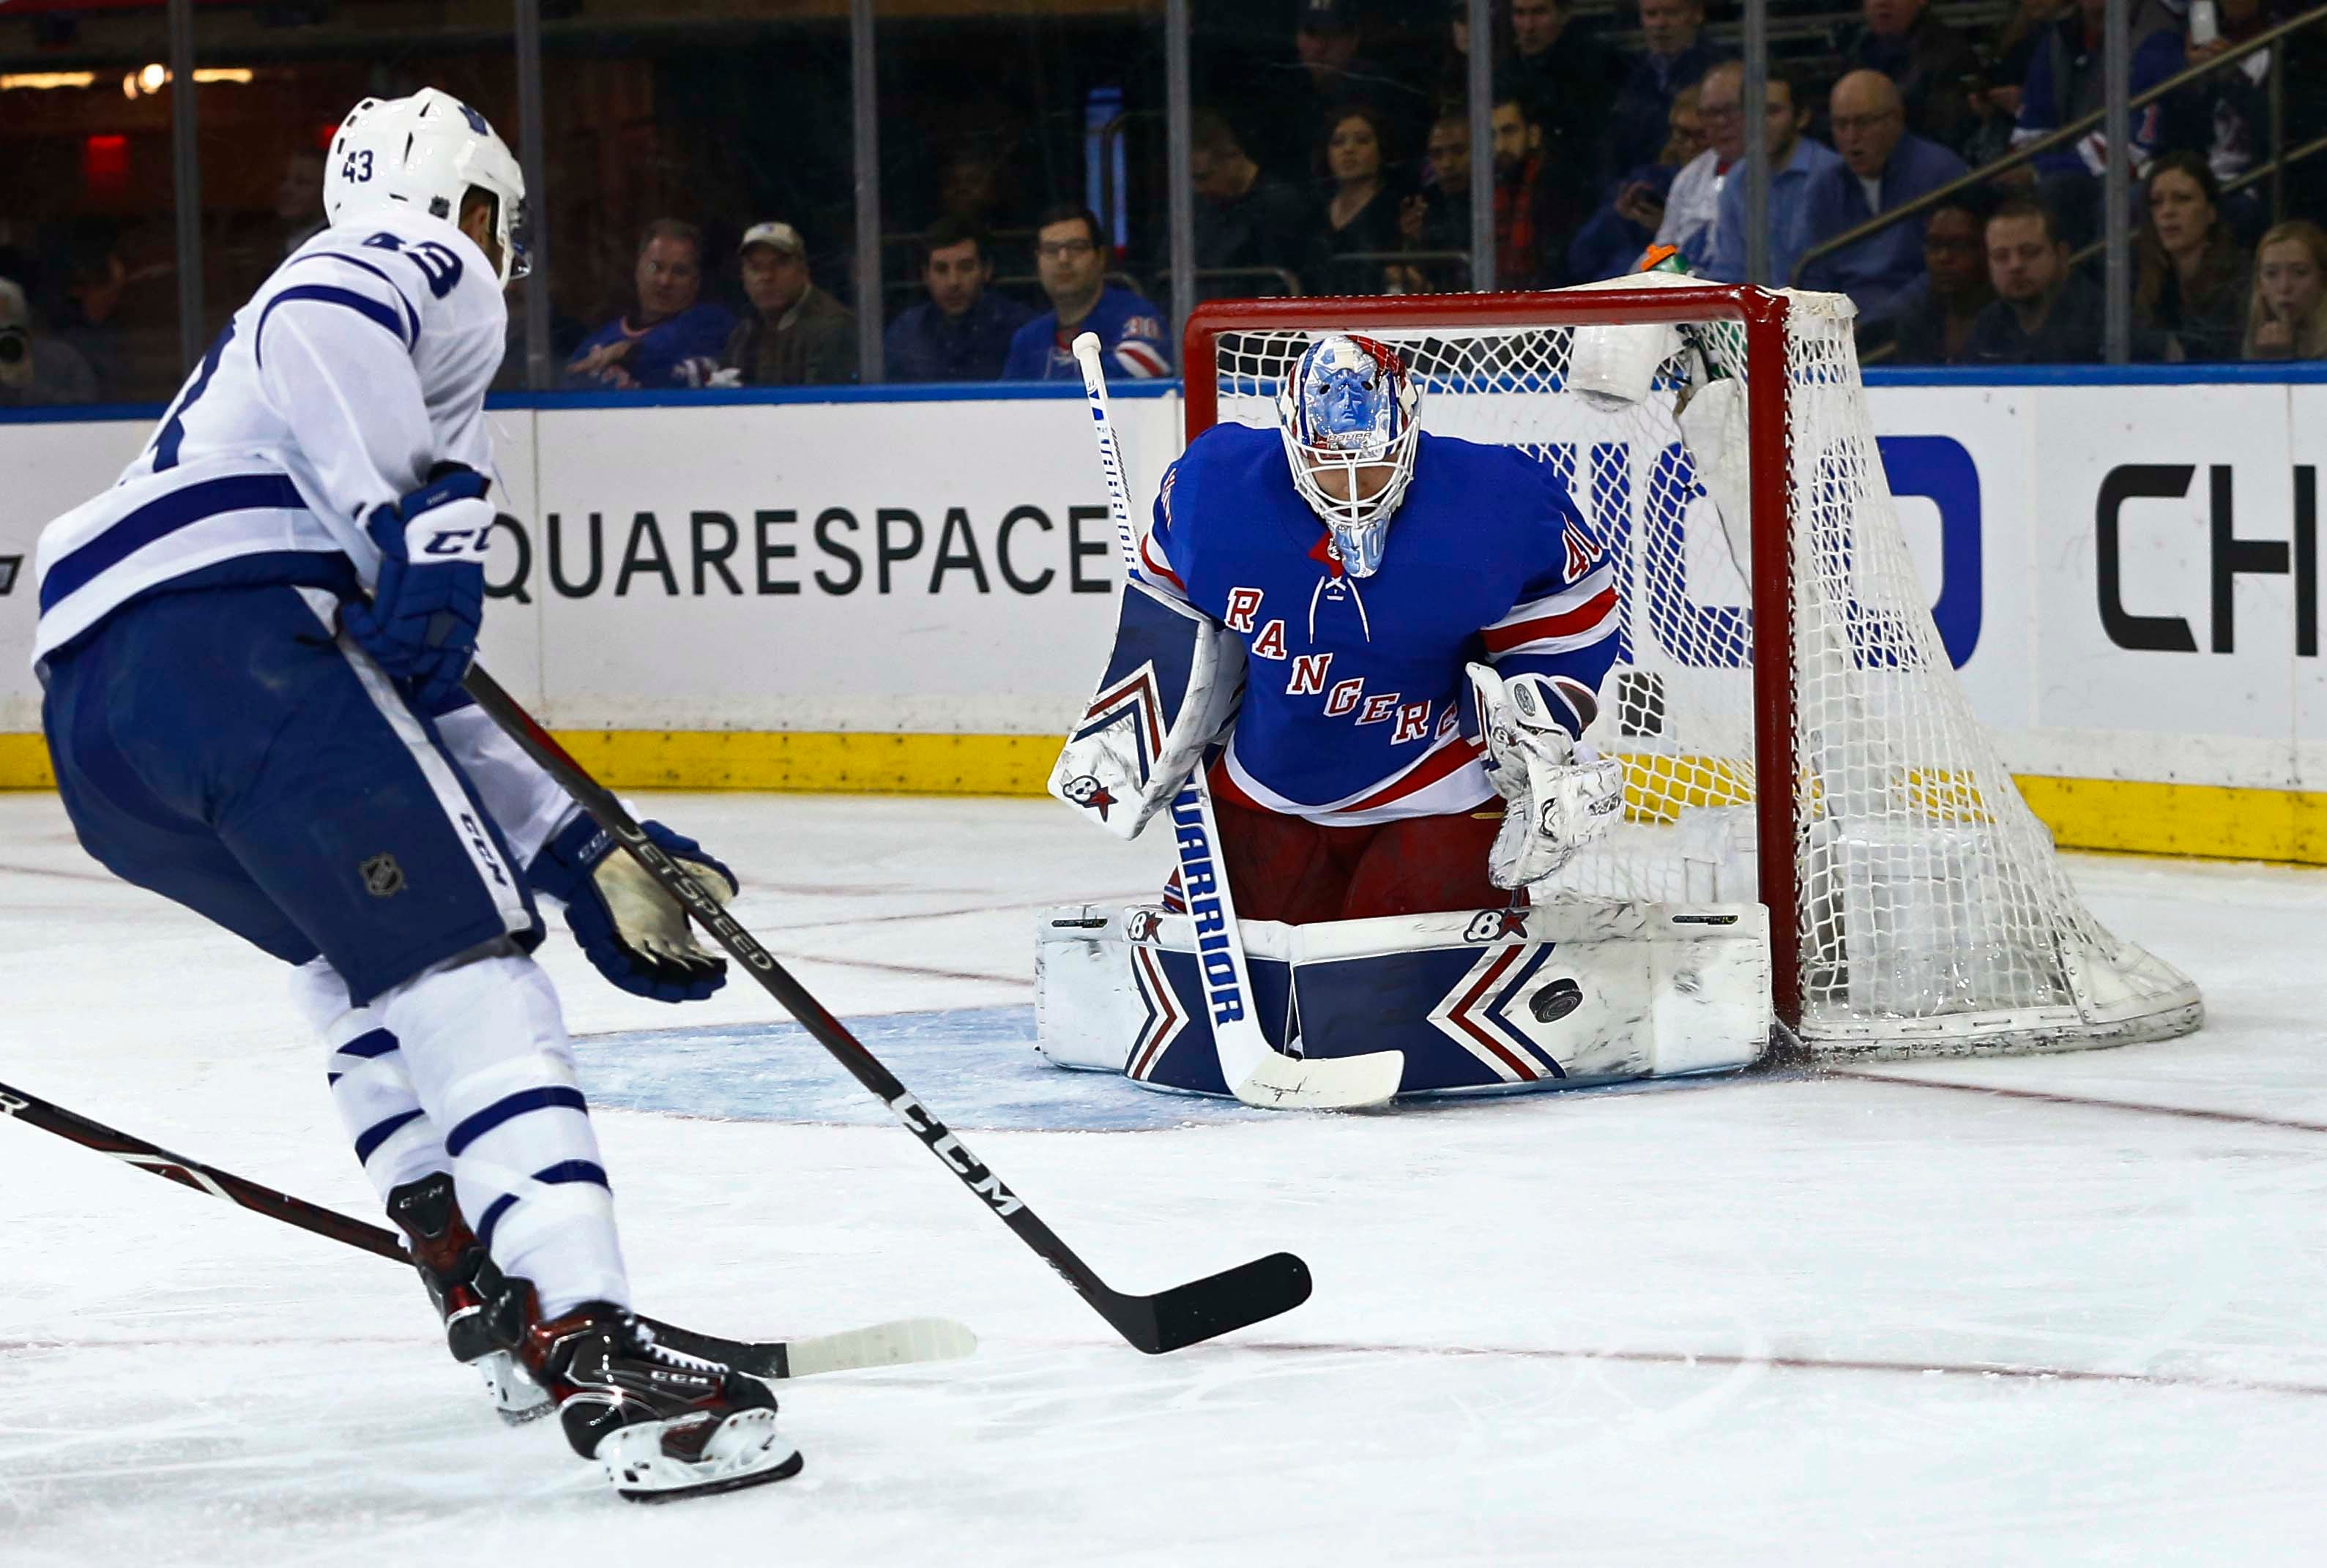 Rangers backup goalie Alexandar Georgiev makes 55 saves to cool off Maple Leafs